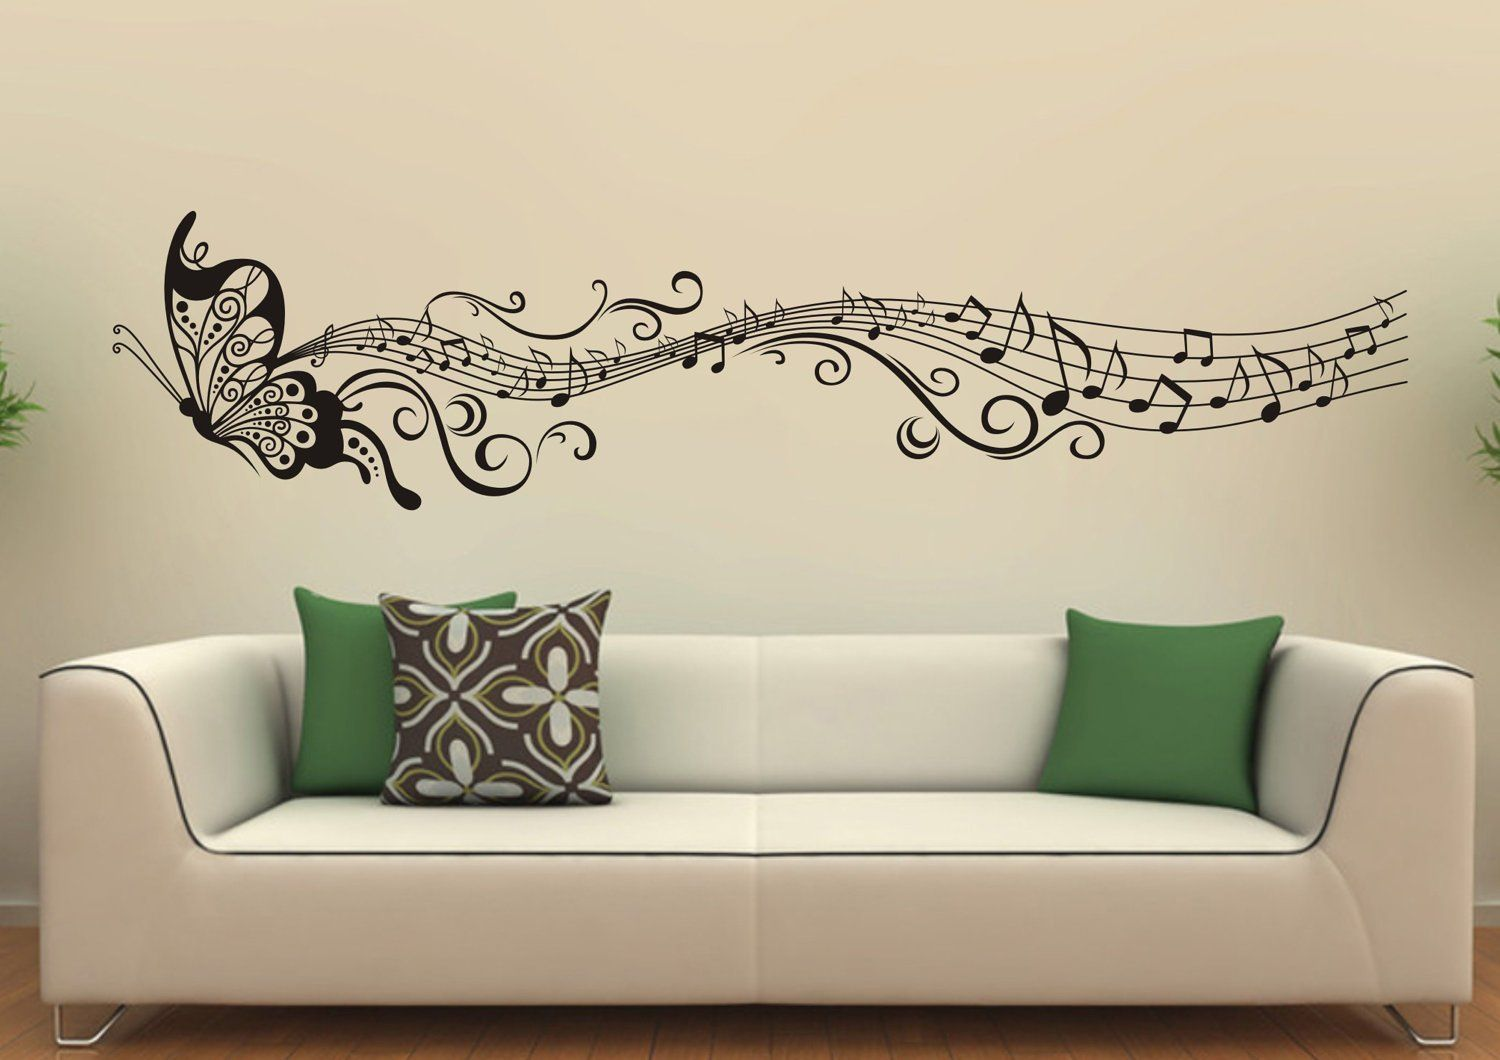 Art Design Ideas For Walls Home Decor Paintings Contemporary